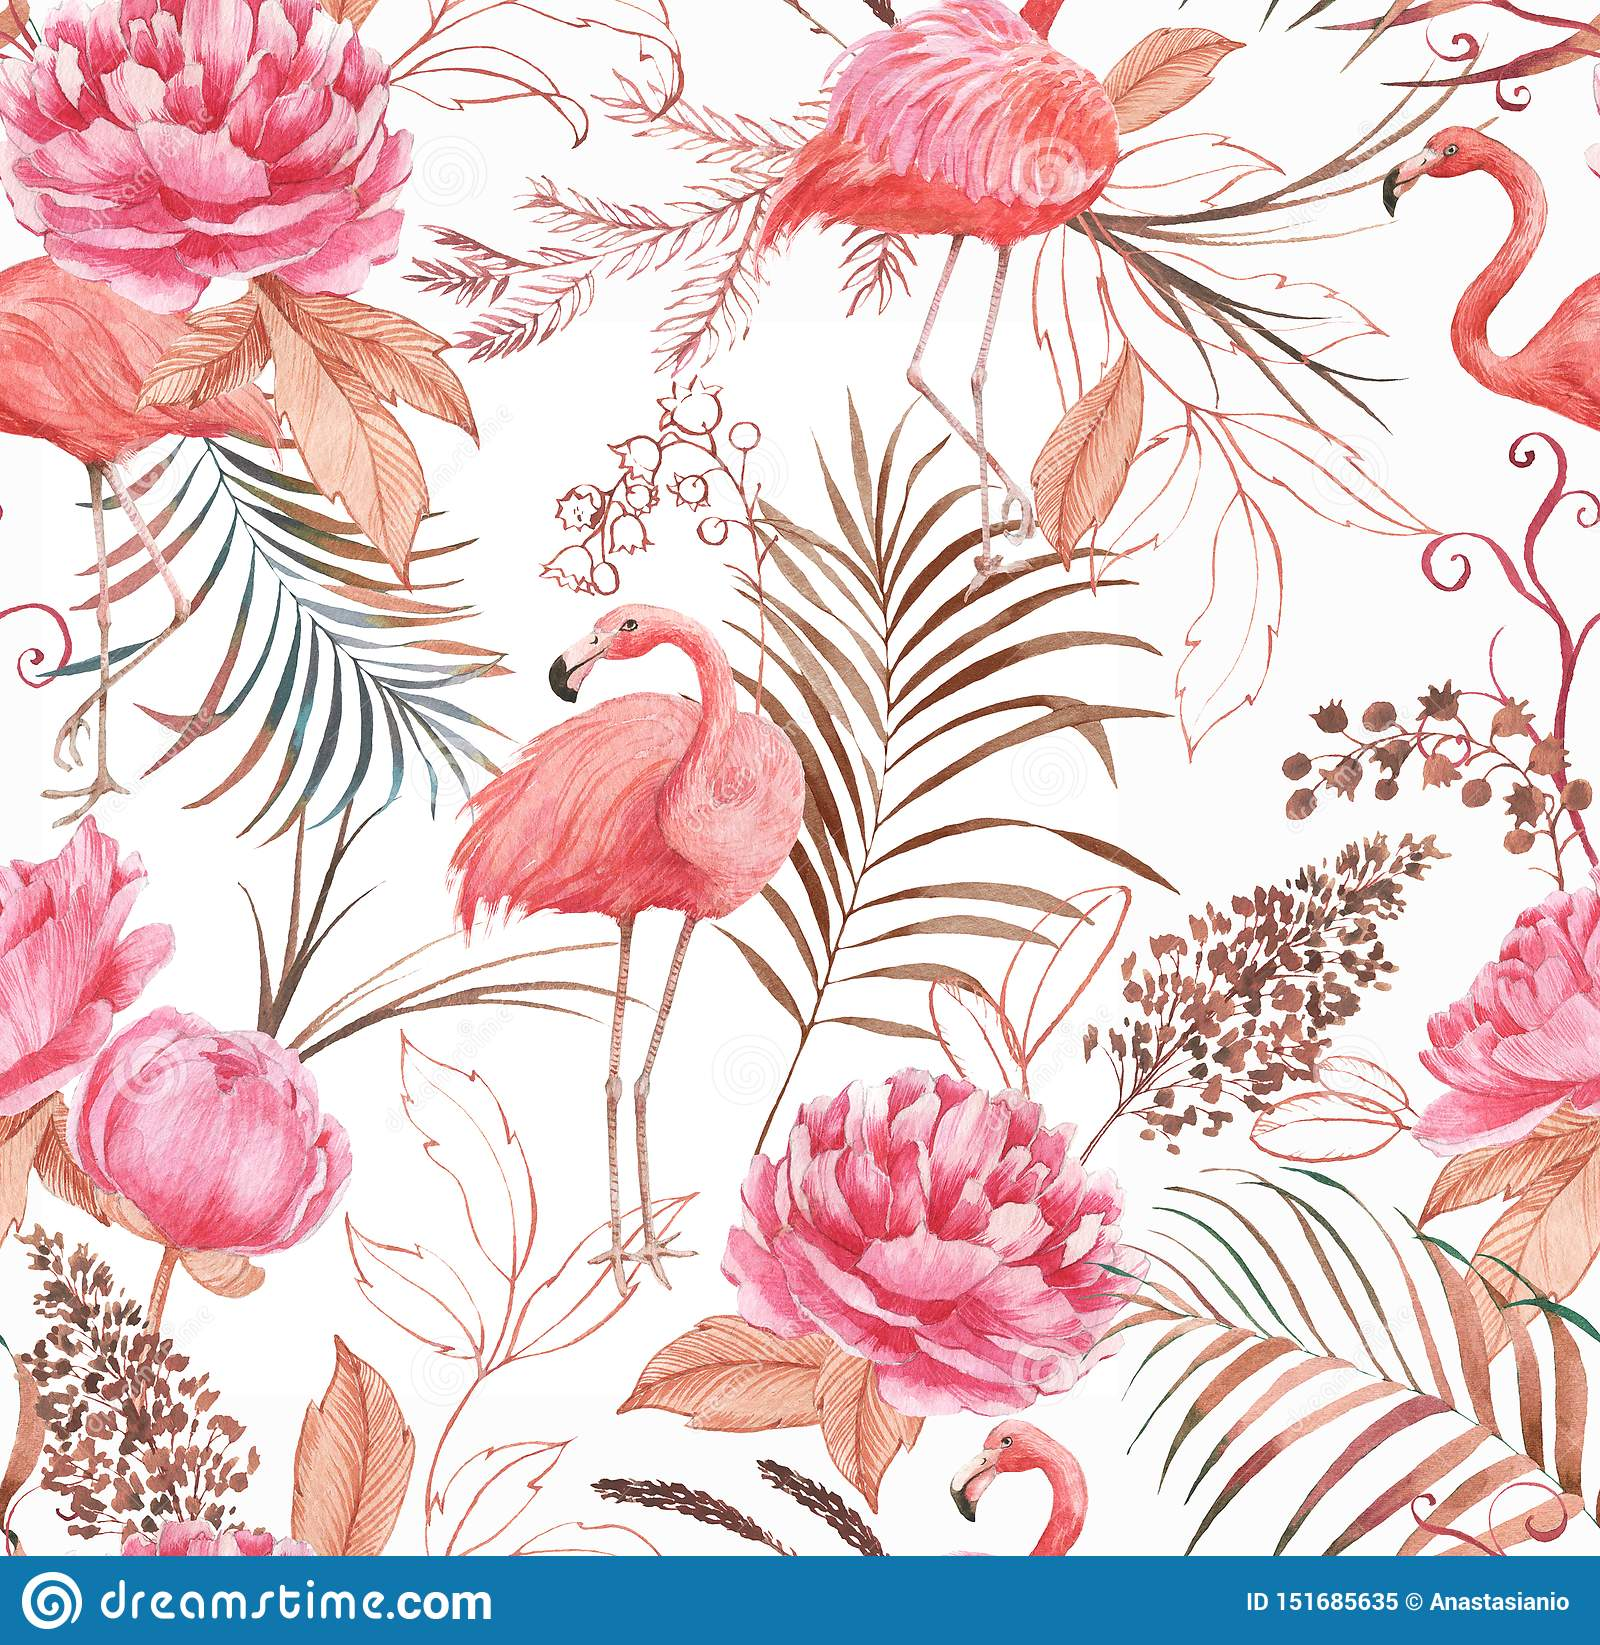 Hand drawn watercolor seamless pattern with pink flamingo, peony and decorative plants.